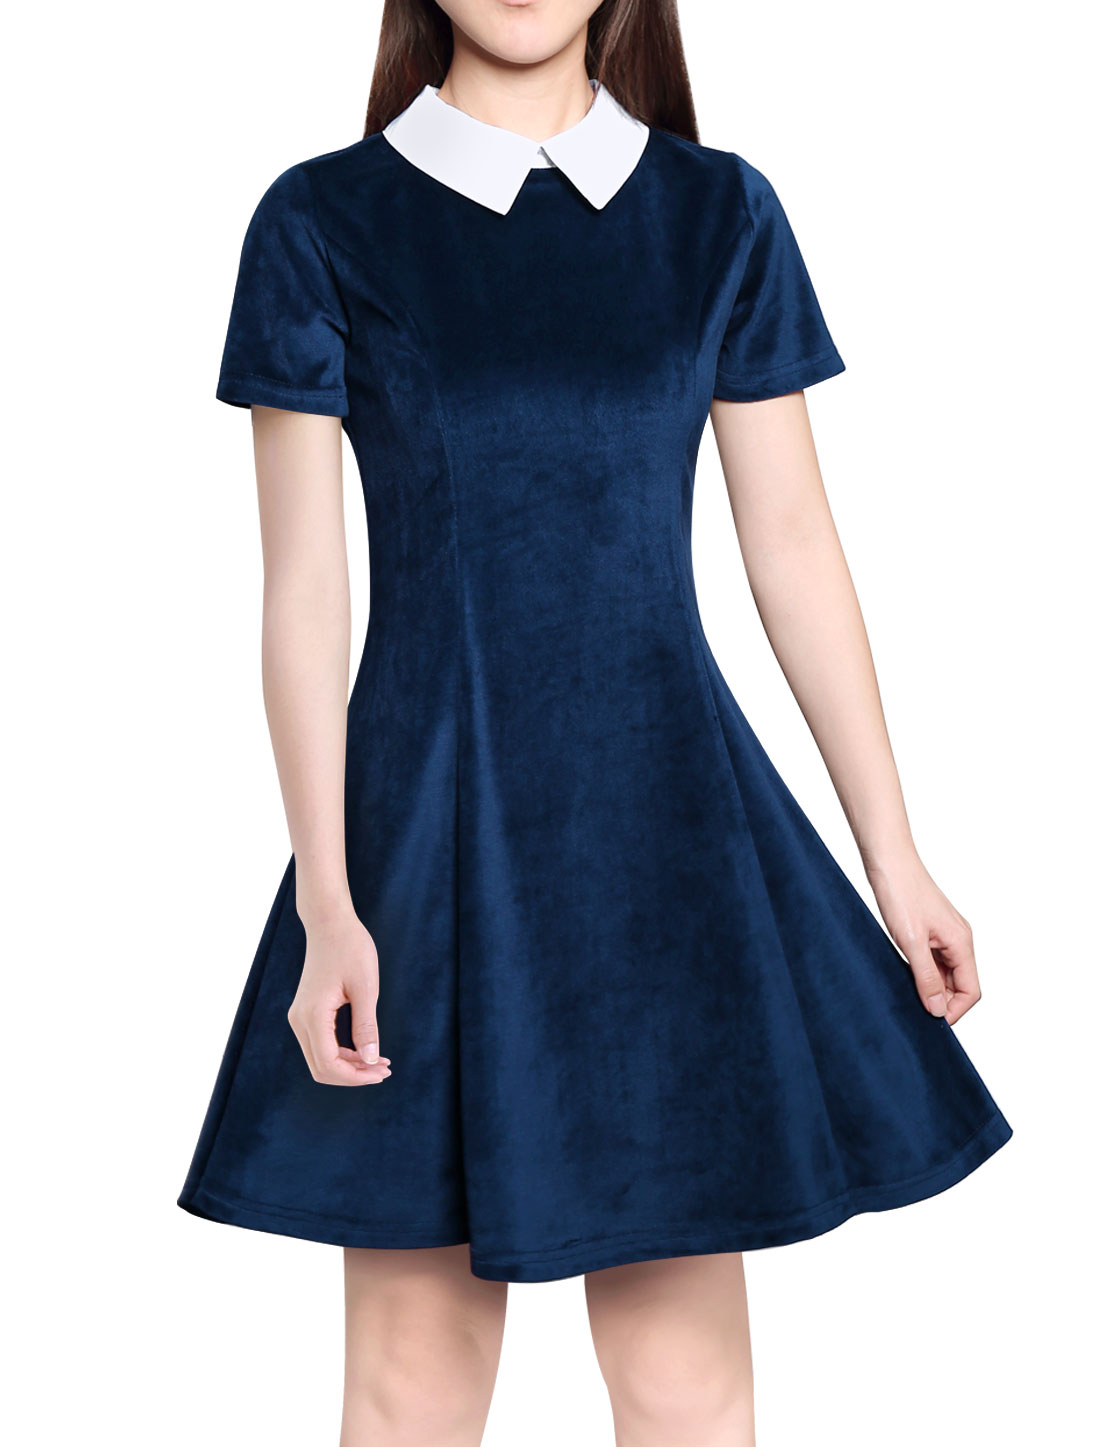 Women Contrast Doll Collar Fit and Flare Dress Blue M